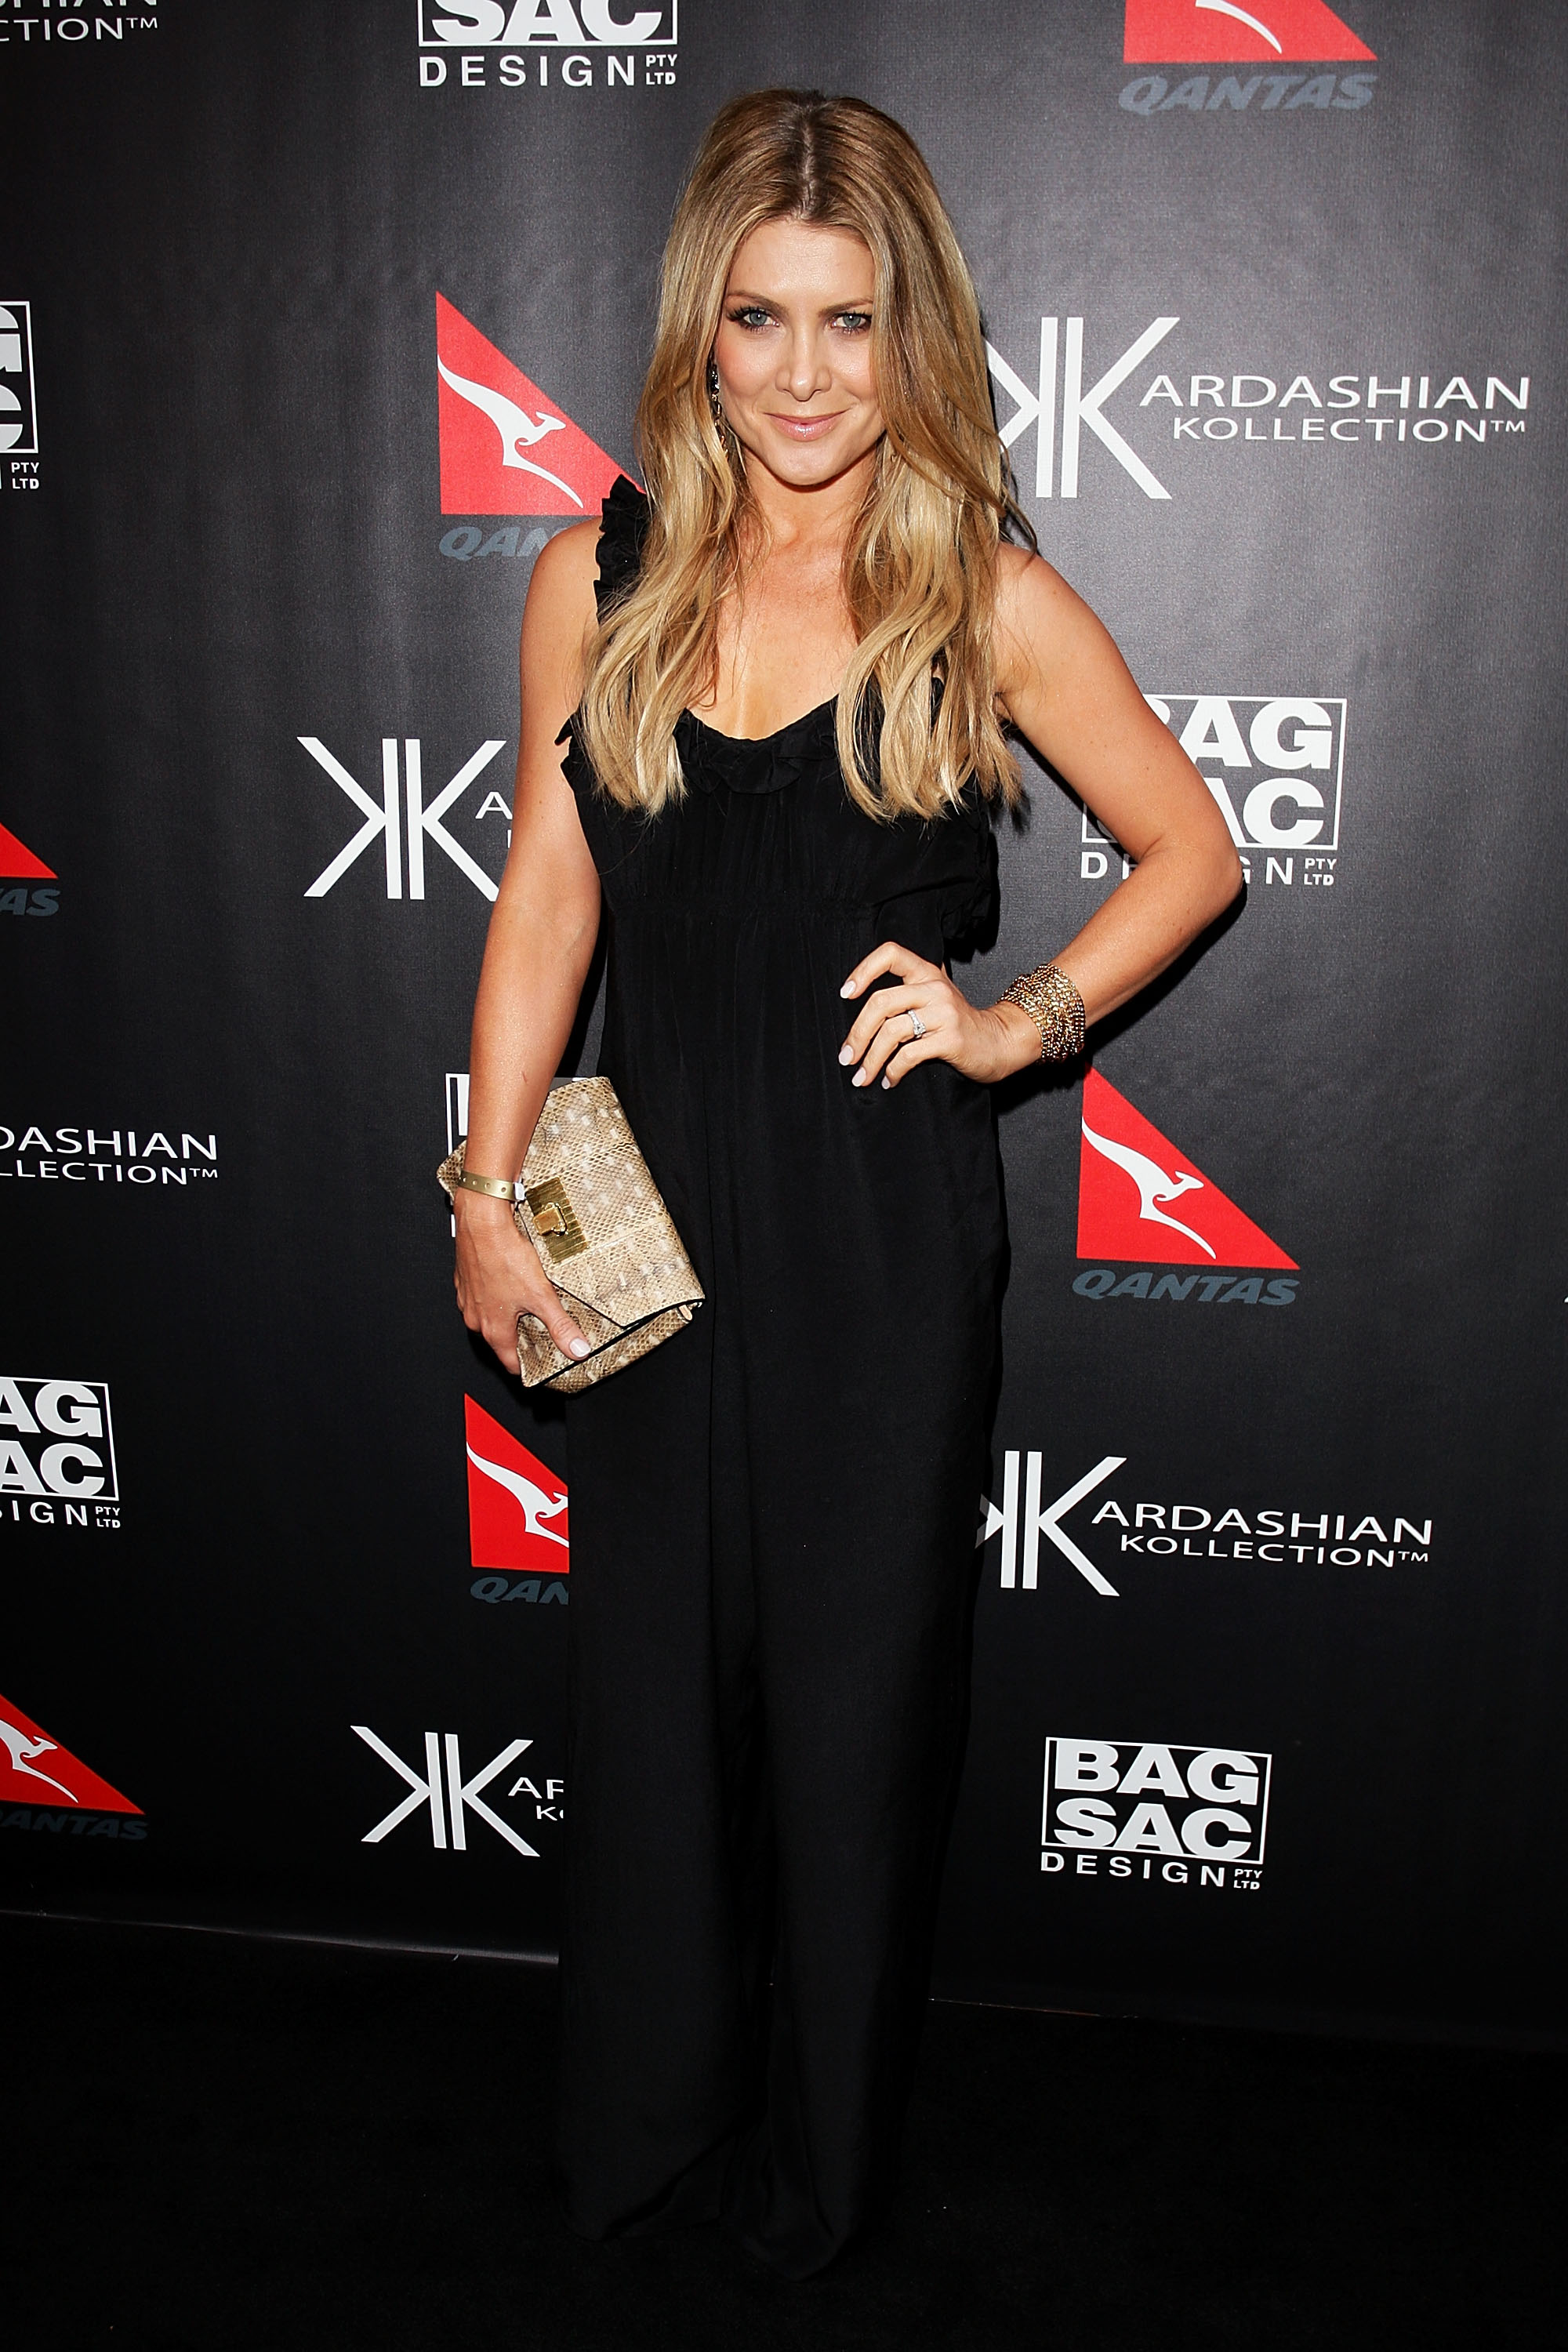 Natalie Bassingthwaighte at the Kardashian Kollection launch.